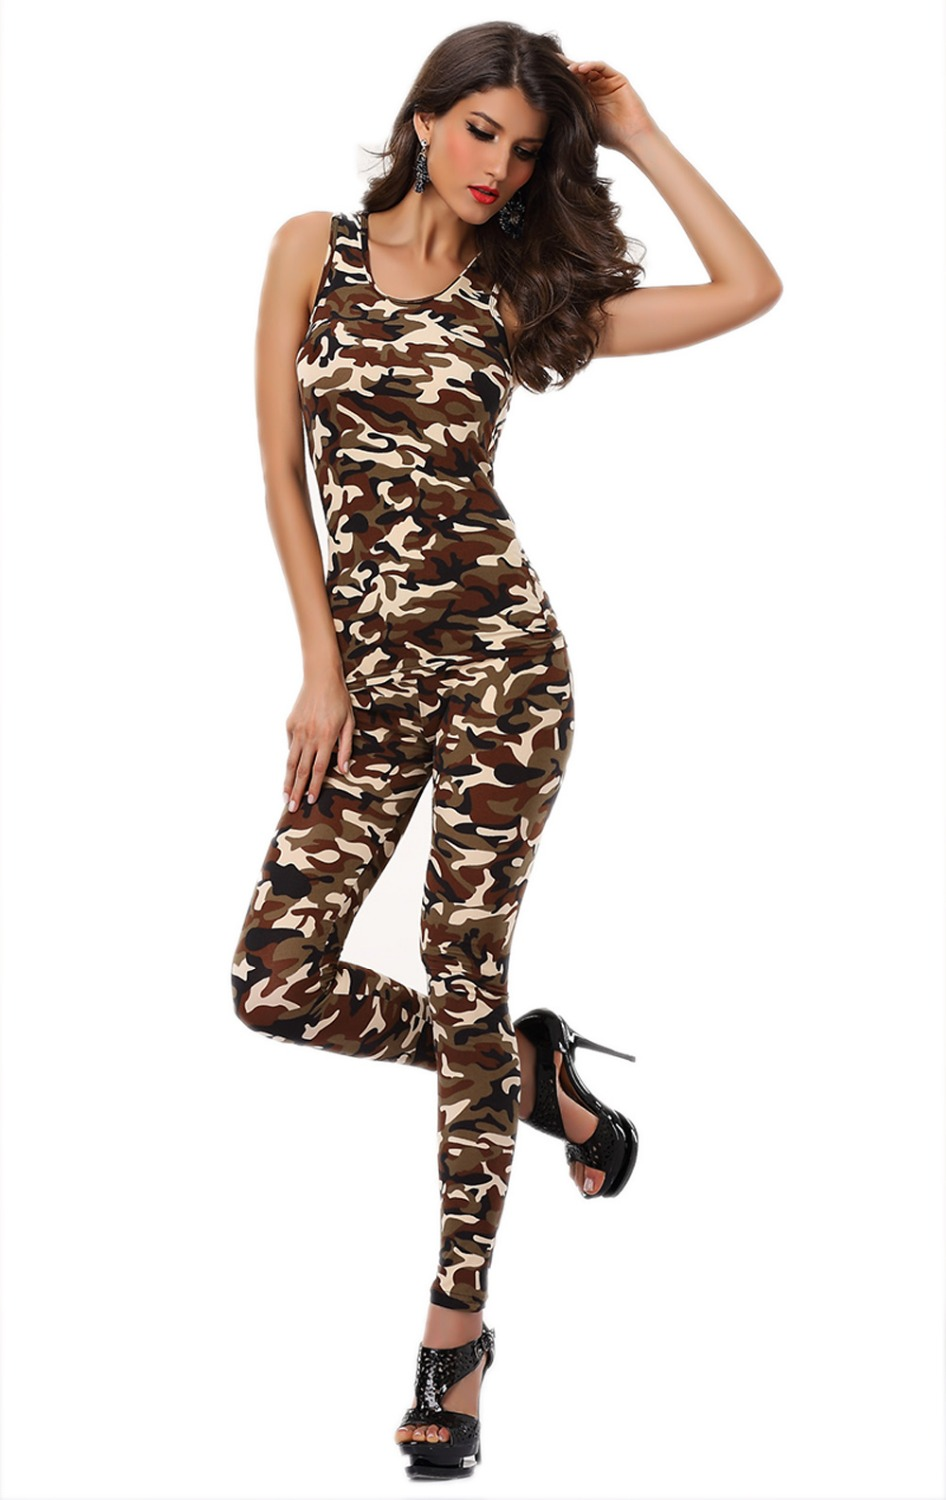 Fashion Ladies <font><b>Sexy</b></font> Print Animal <font><b>Army</b></font> Tight Bodysuit Catsuit Jumpsuit Clubwear <font><b>Cosplay</b></font> Fancy Pant 3S1761 image